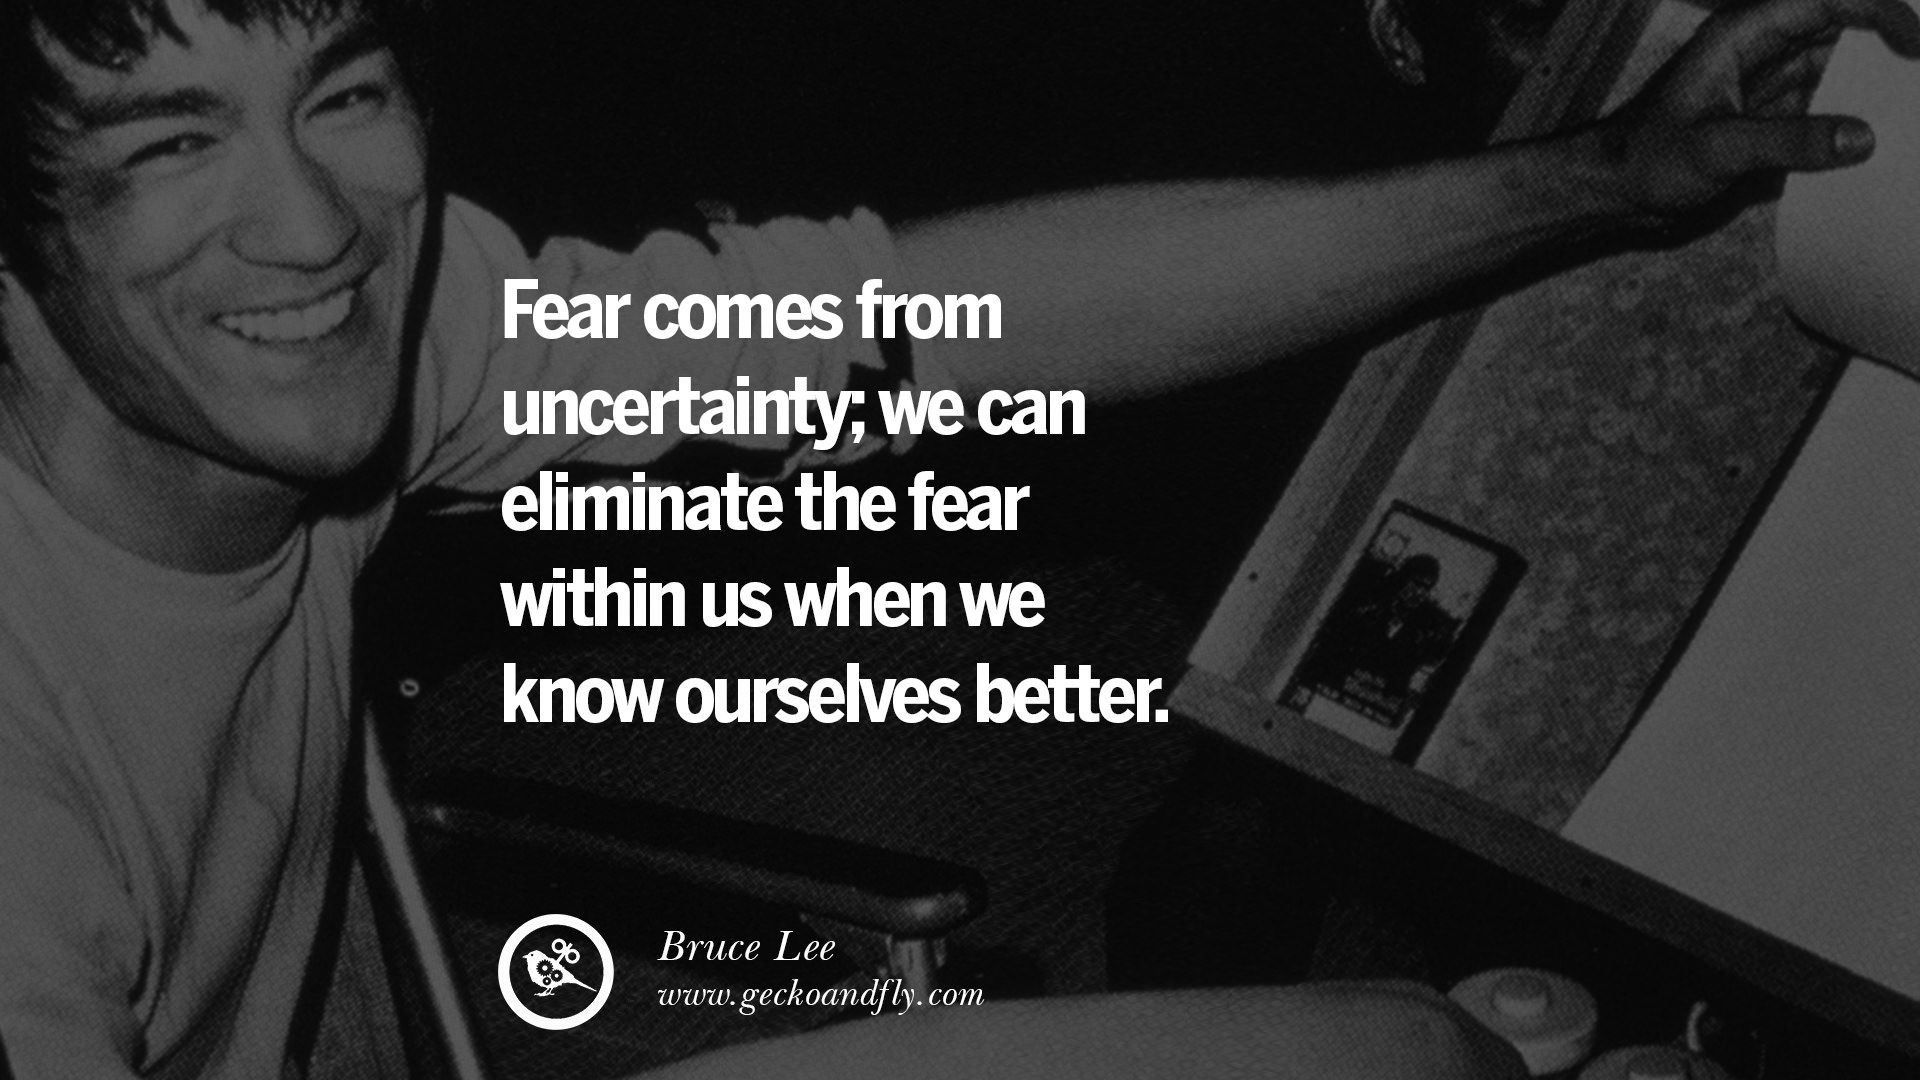 Fear Comes From Uncertainty We Can Eliminate The Within Us When Know Ourselves